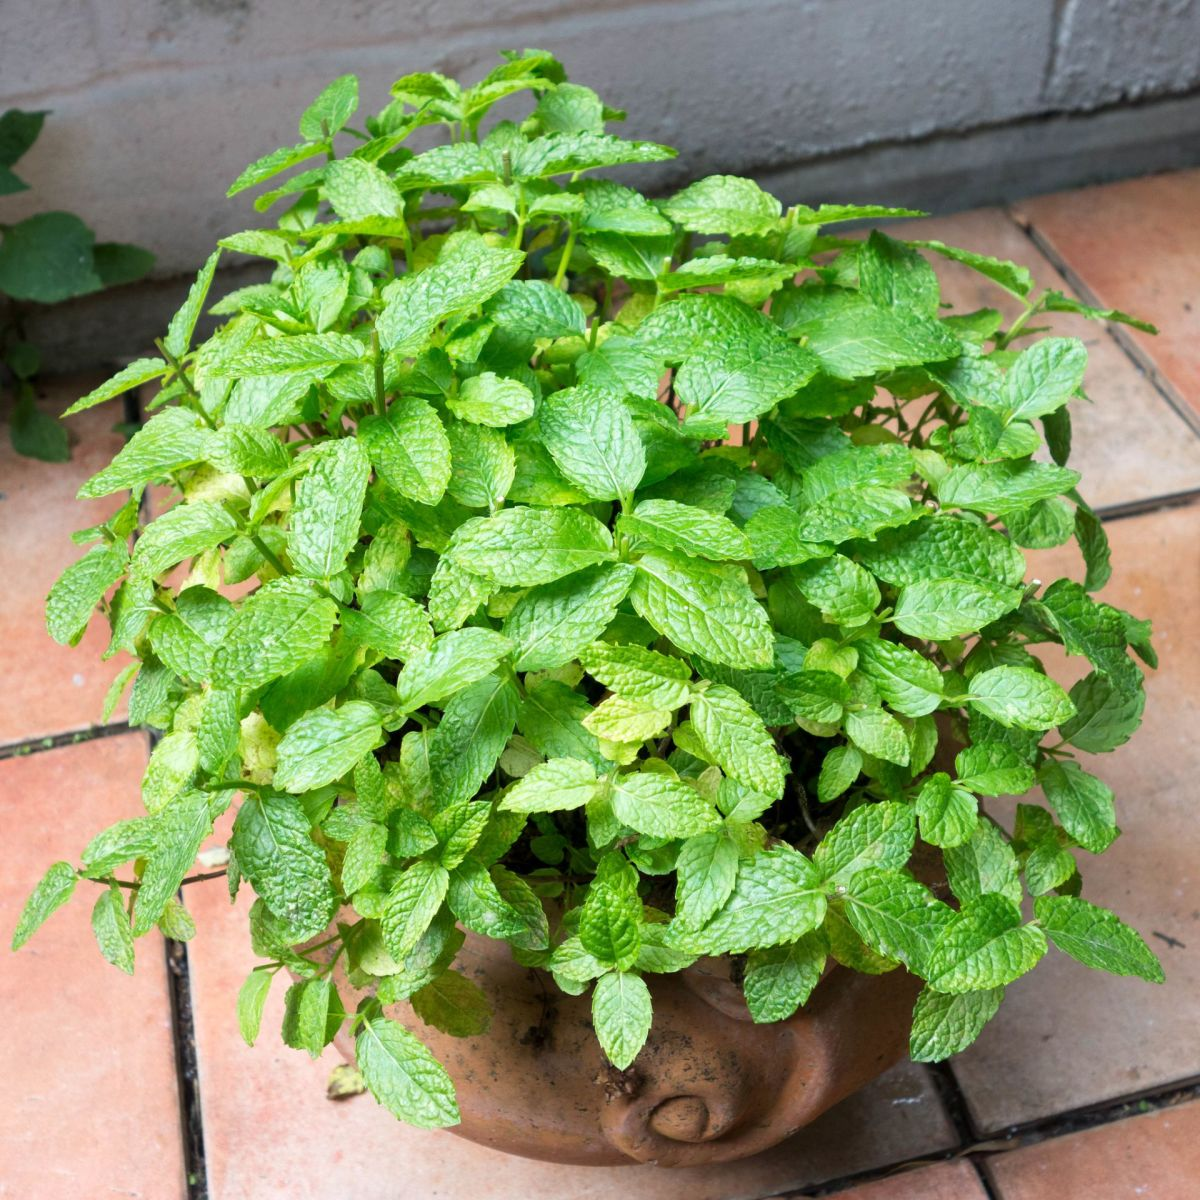 There are many varieties of mint including peppermint, spearmint and apple mint.